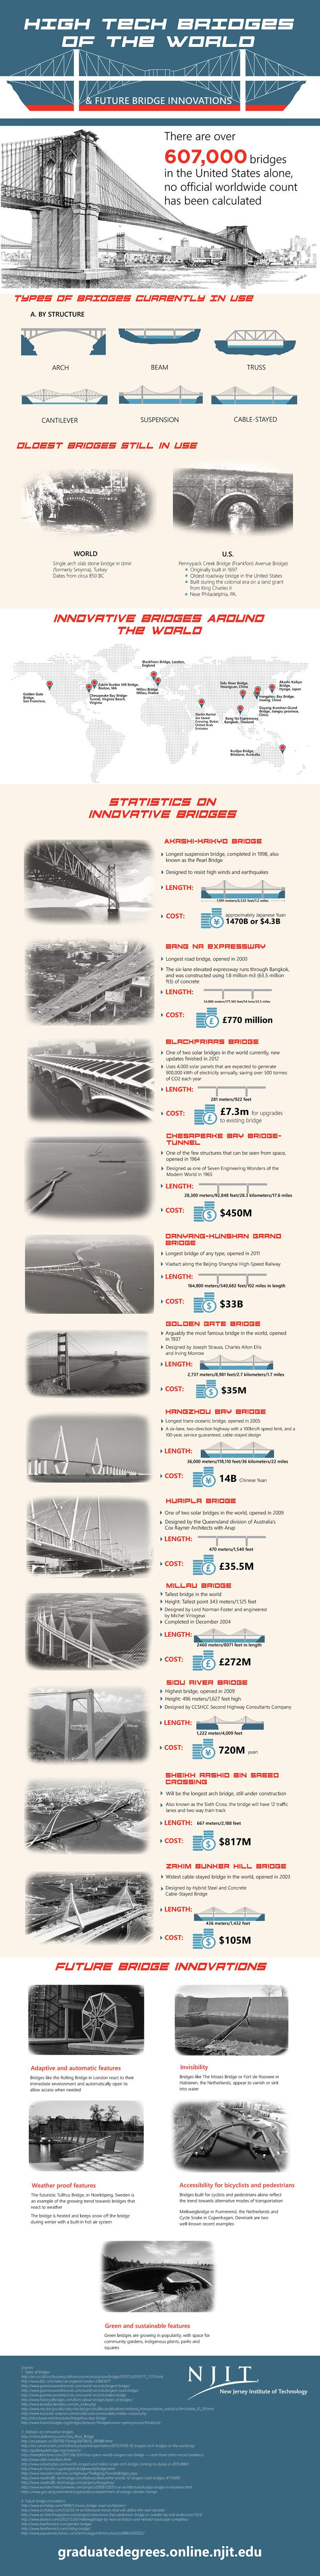 Infographic high tech bridges of the future